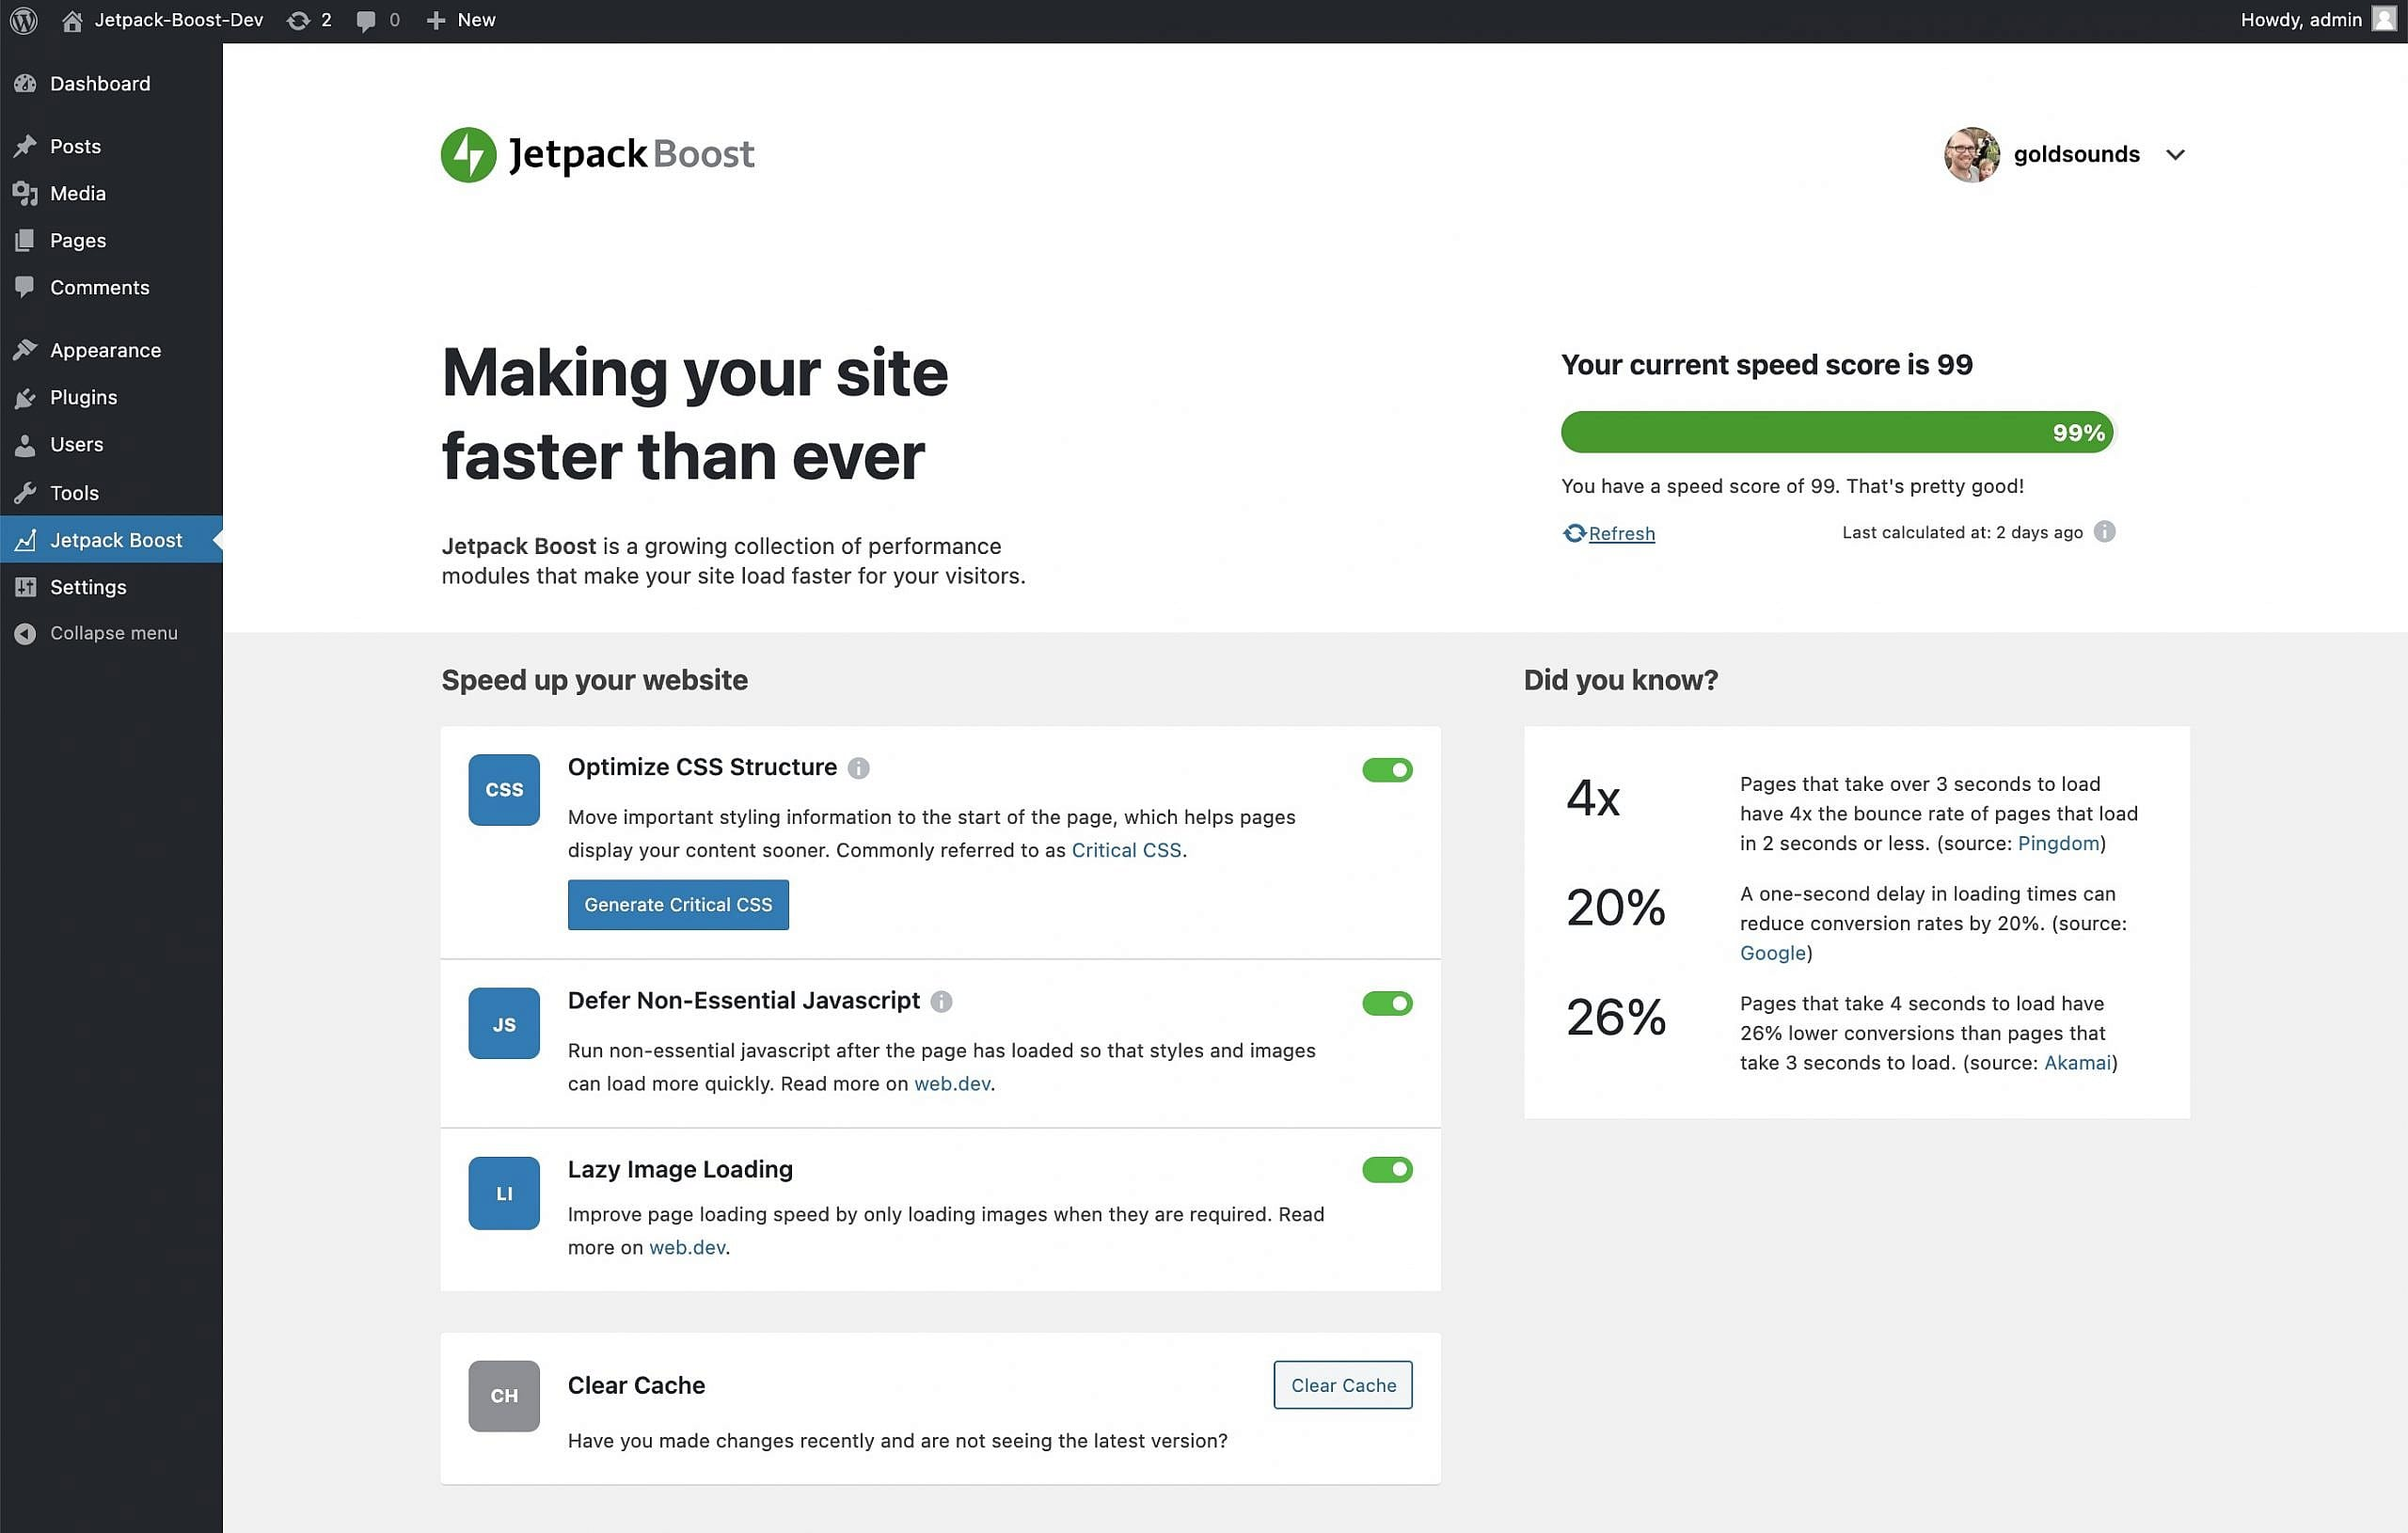 automattic-launches-jetpack-boost-a-new-performance-plugin Automattic Launches Jetpack Boost: A New Performance Plugin